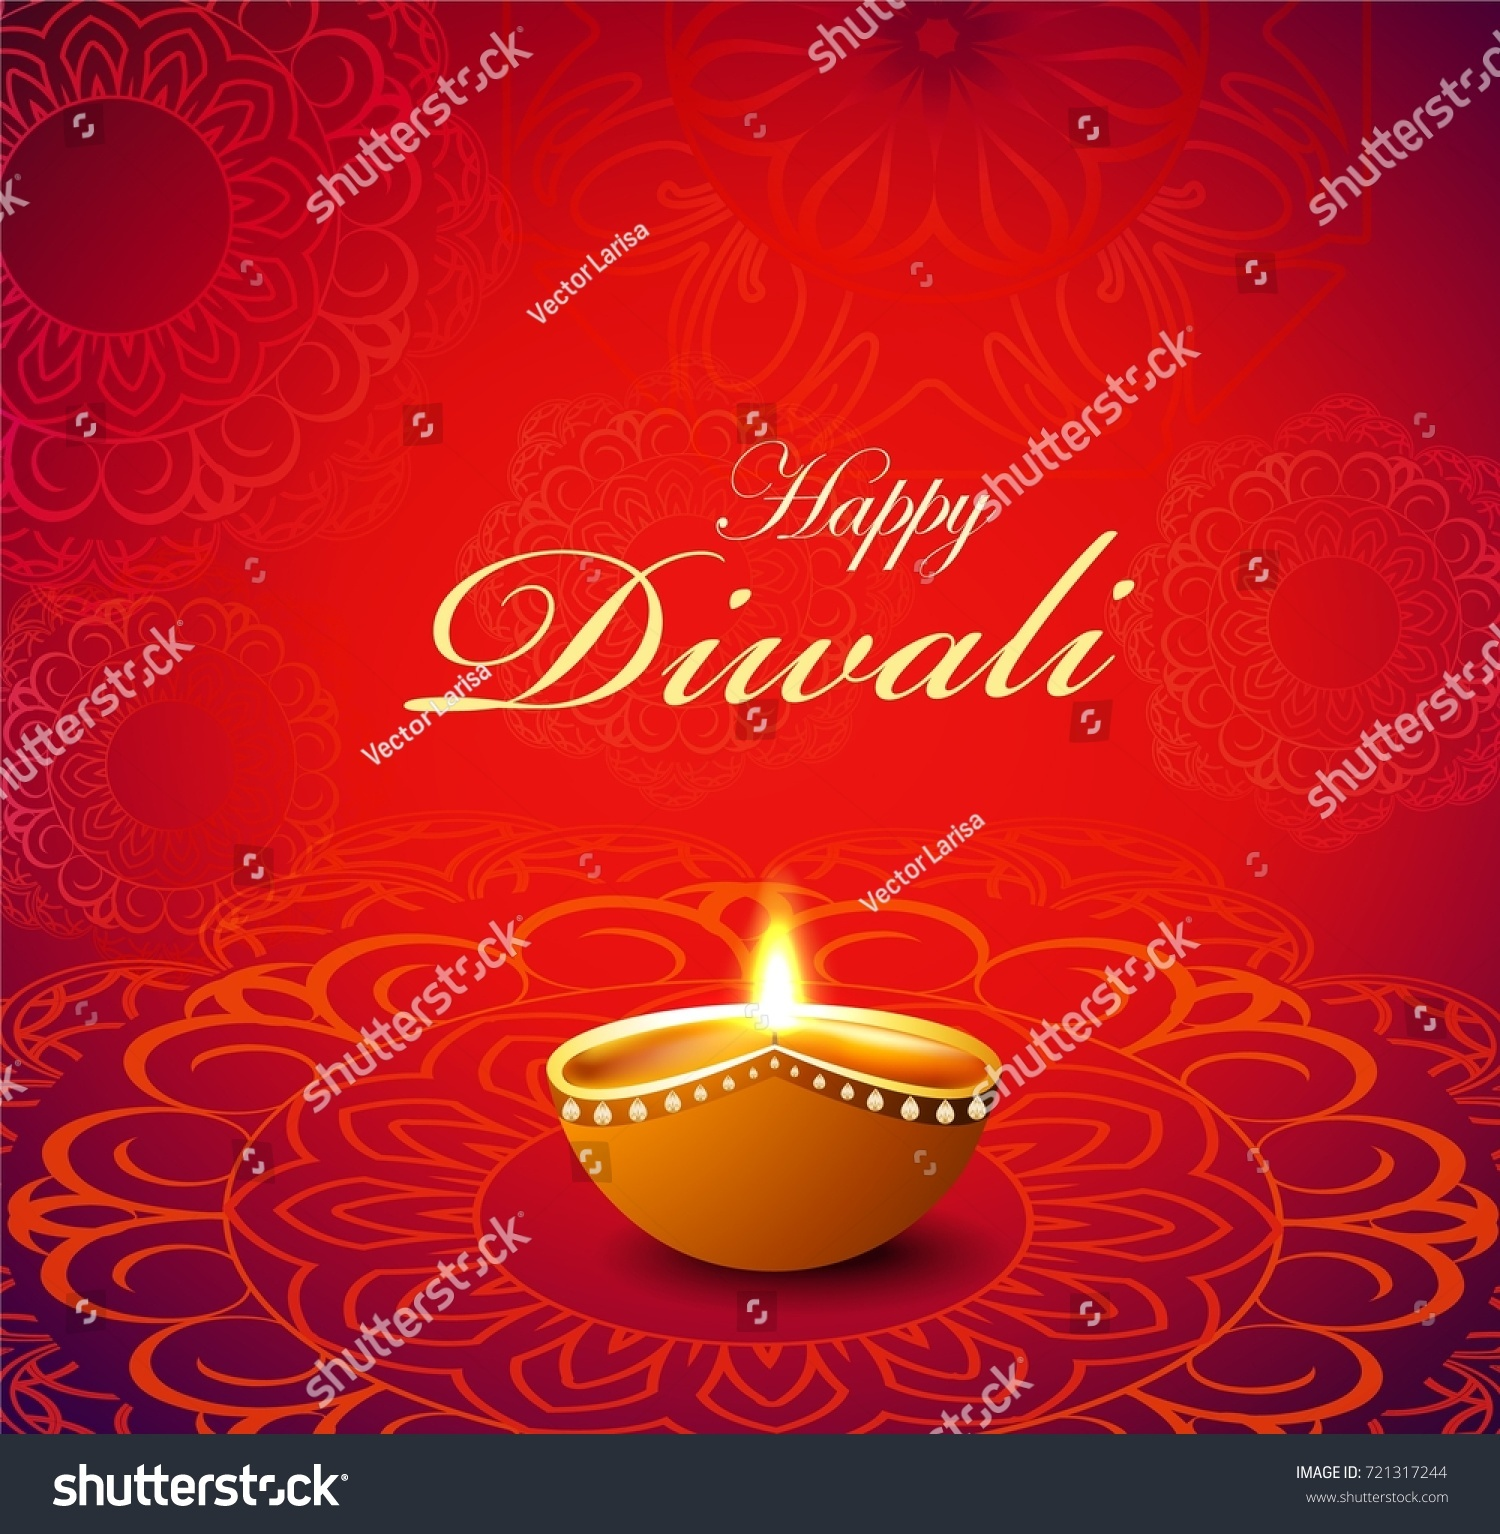 Template Greeting Card Designs Holiday Diwali Stock Vector 2018